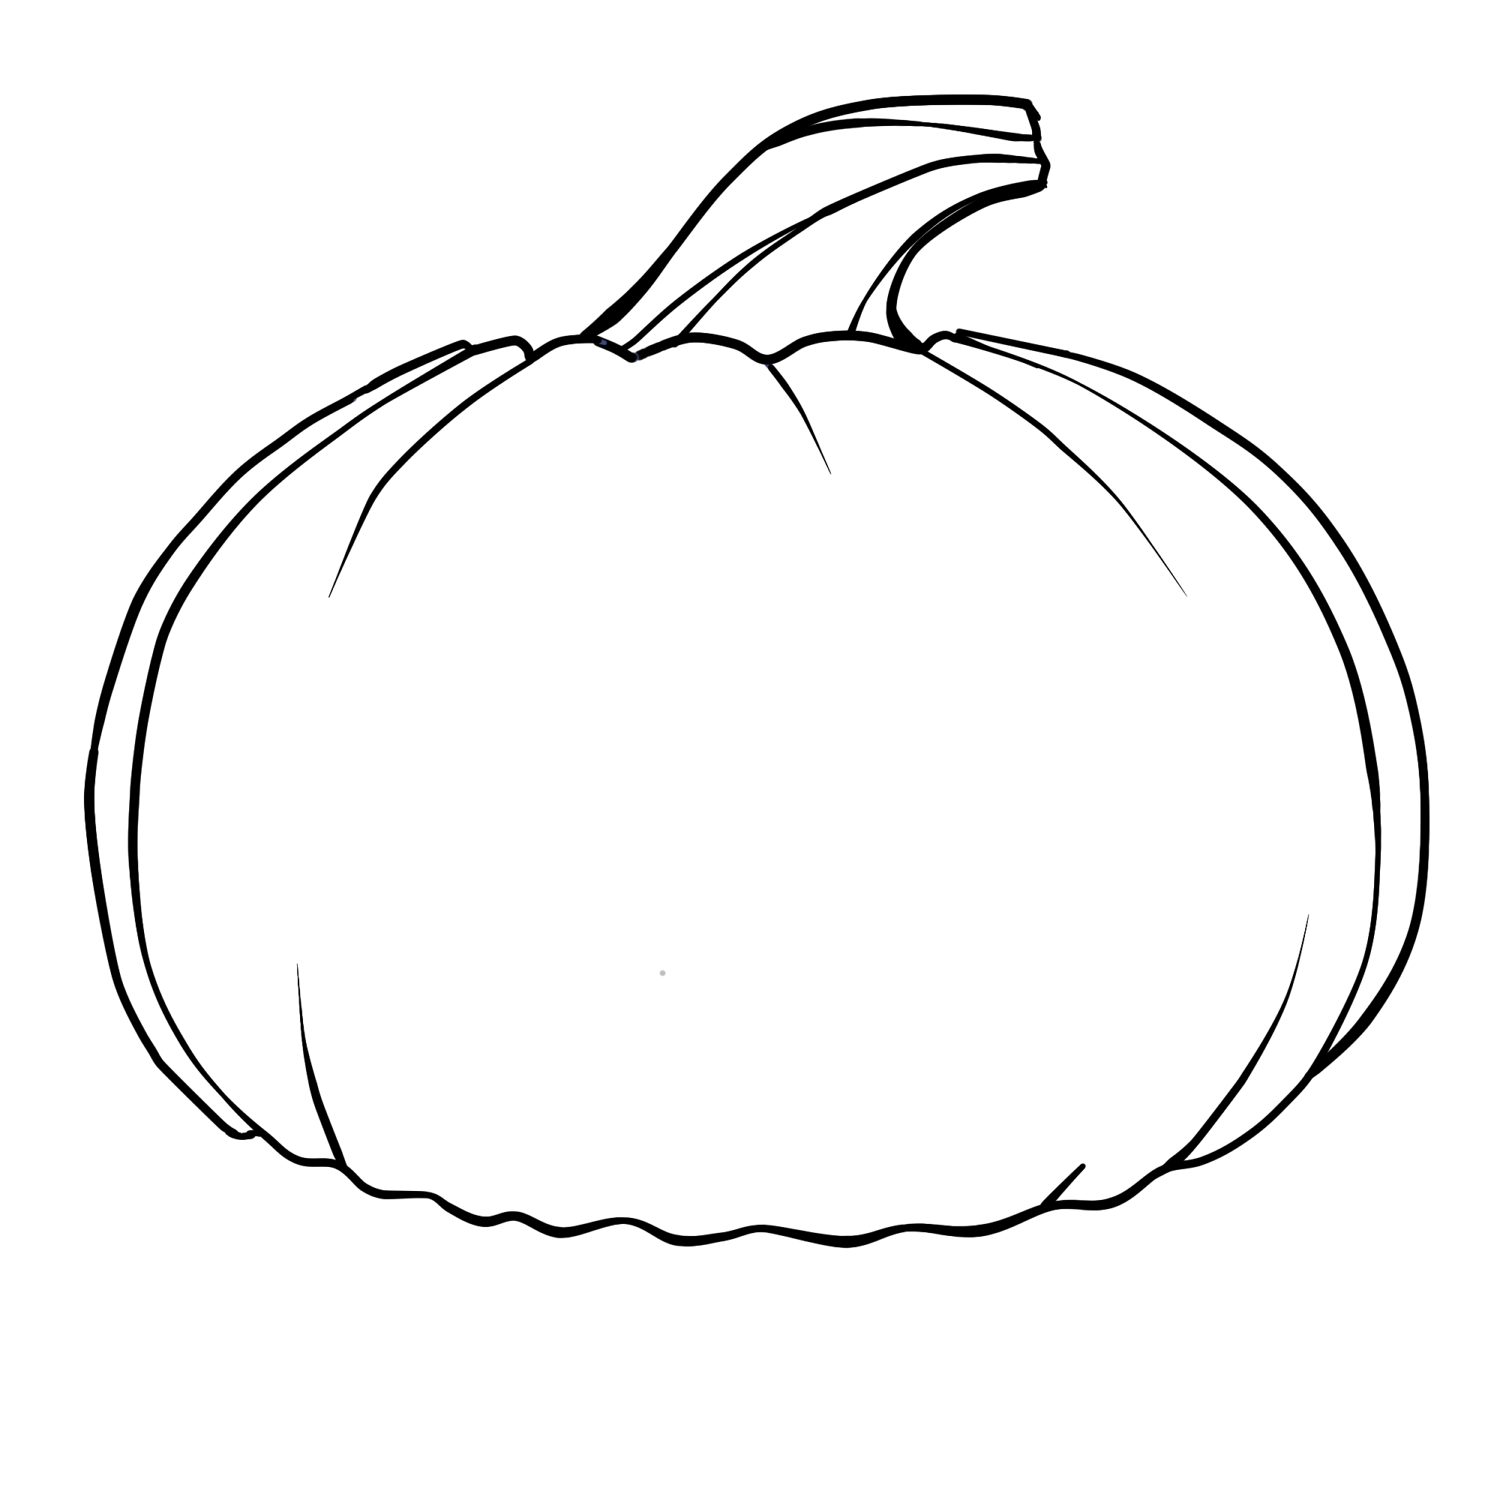 4 Images of Free Printable Fall Pumpkin